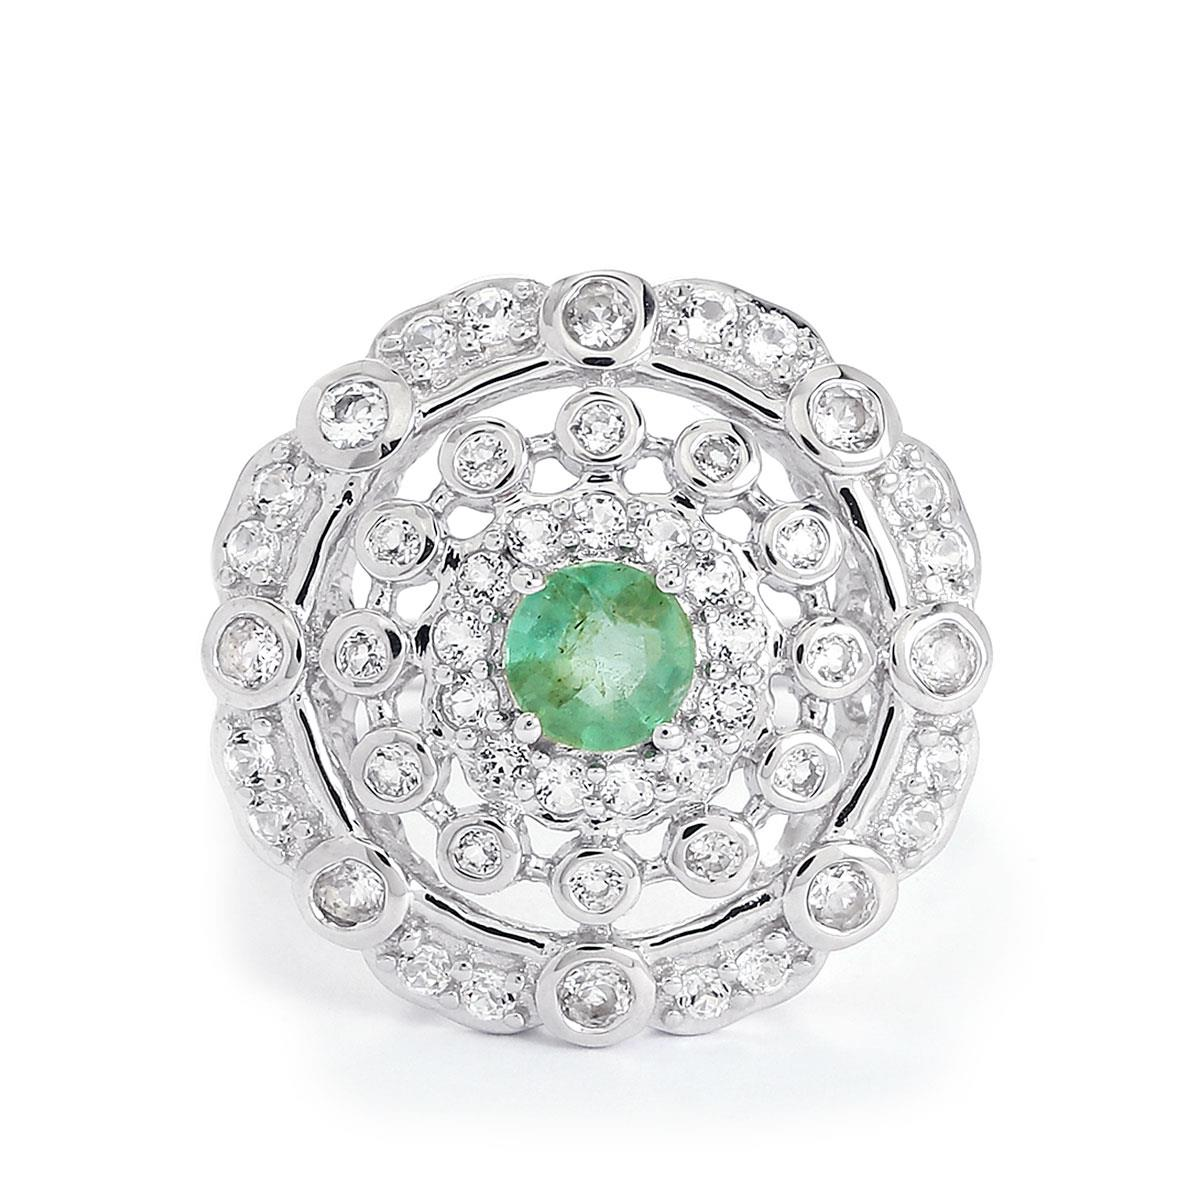 Zambian Emerald Ring With White Topaz In Sterling Silver 1